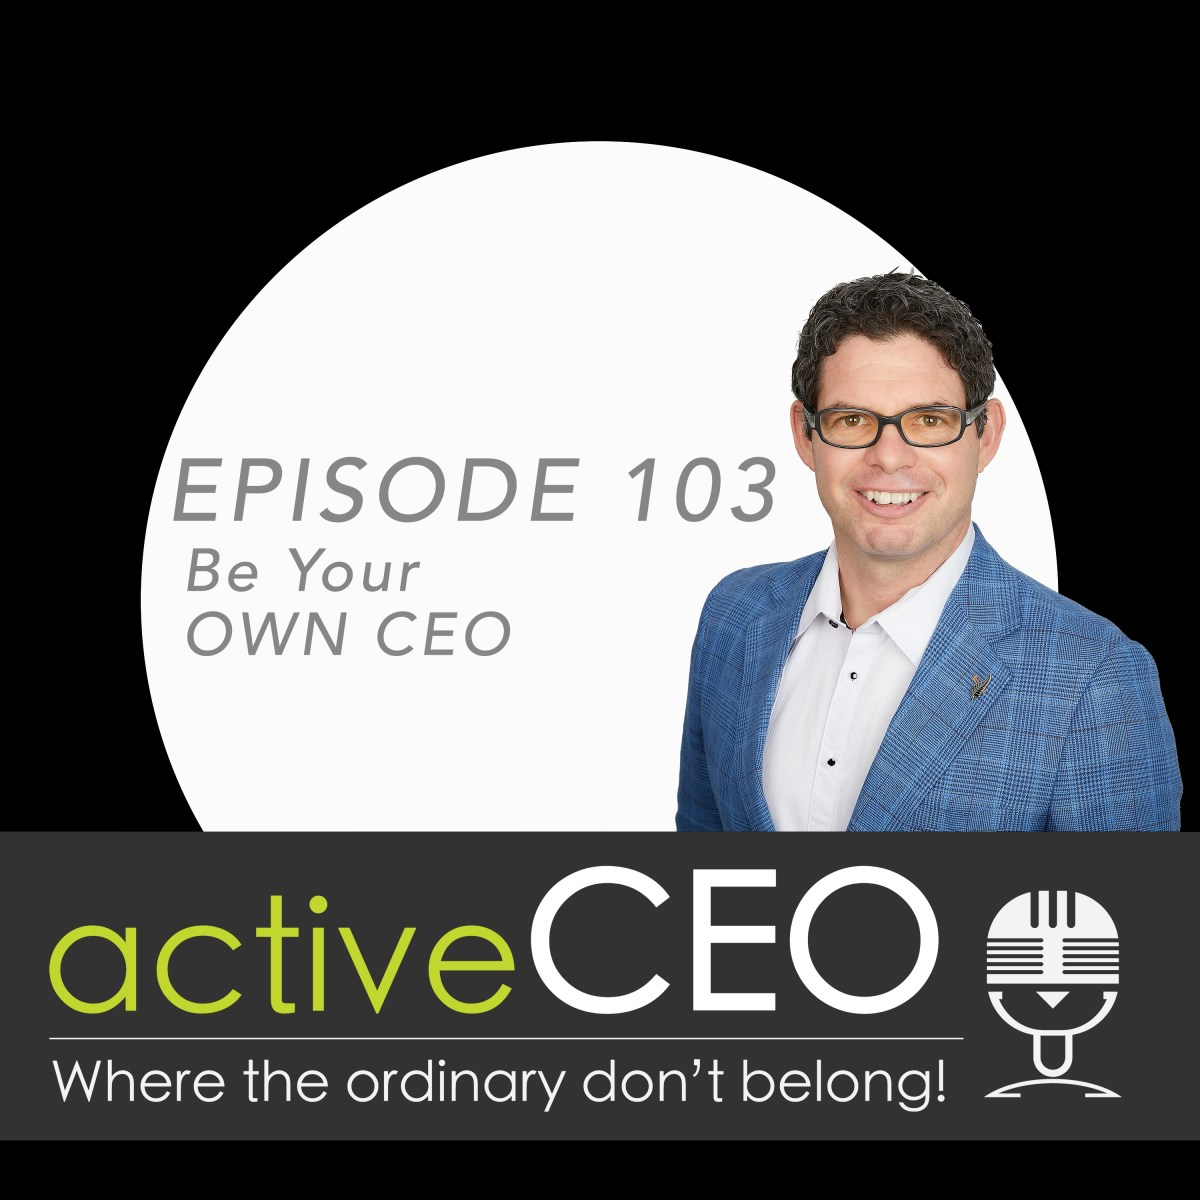 active CEO Podcast Craig Johns Be Your OWN CEO Breaking The CEO Code Coach Speaker Consultant